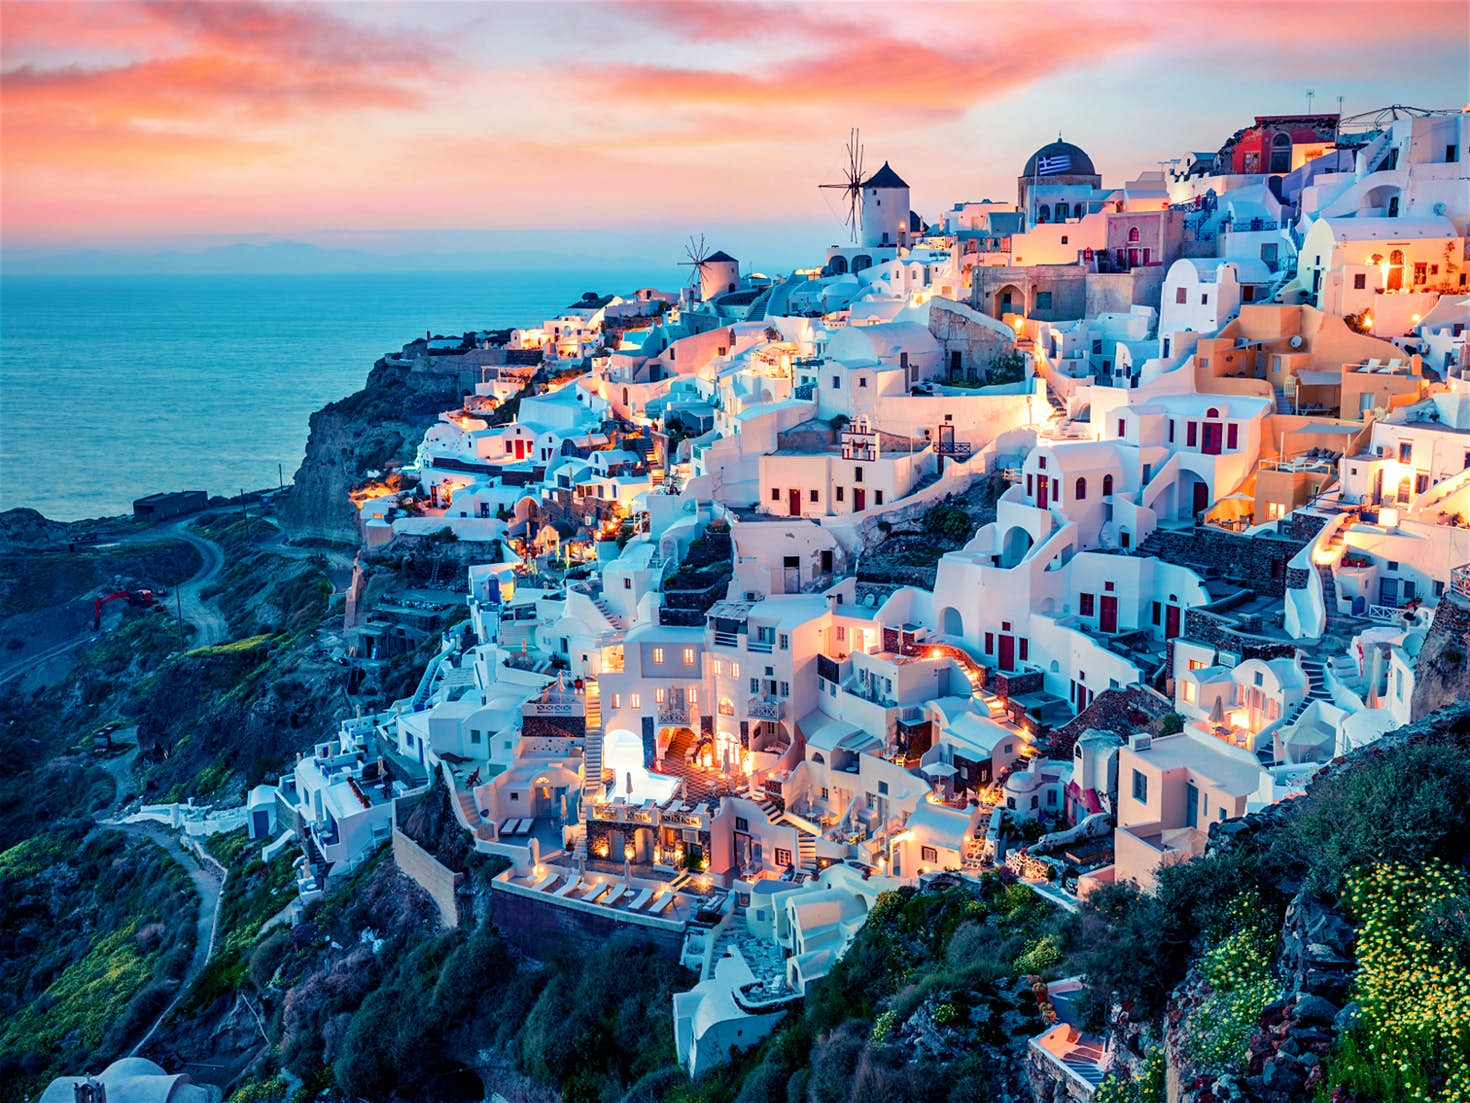 Santorini Mykonos Air-conditioned Cabin Tours,Light Tours Blue Cruise, Blue Cruise, Discount Tours,Greek Islands Blue Cruise 117